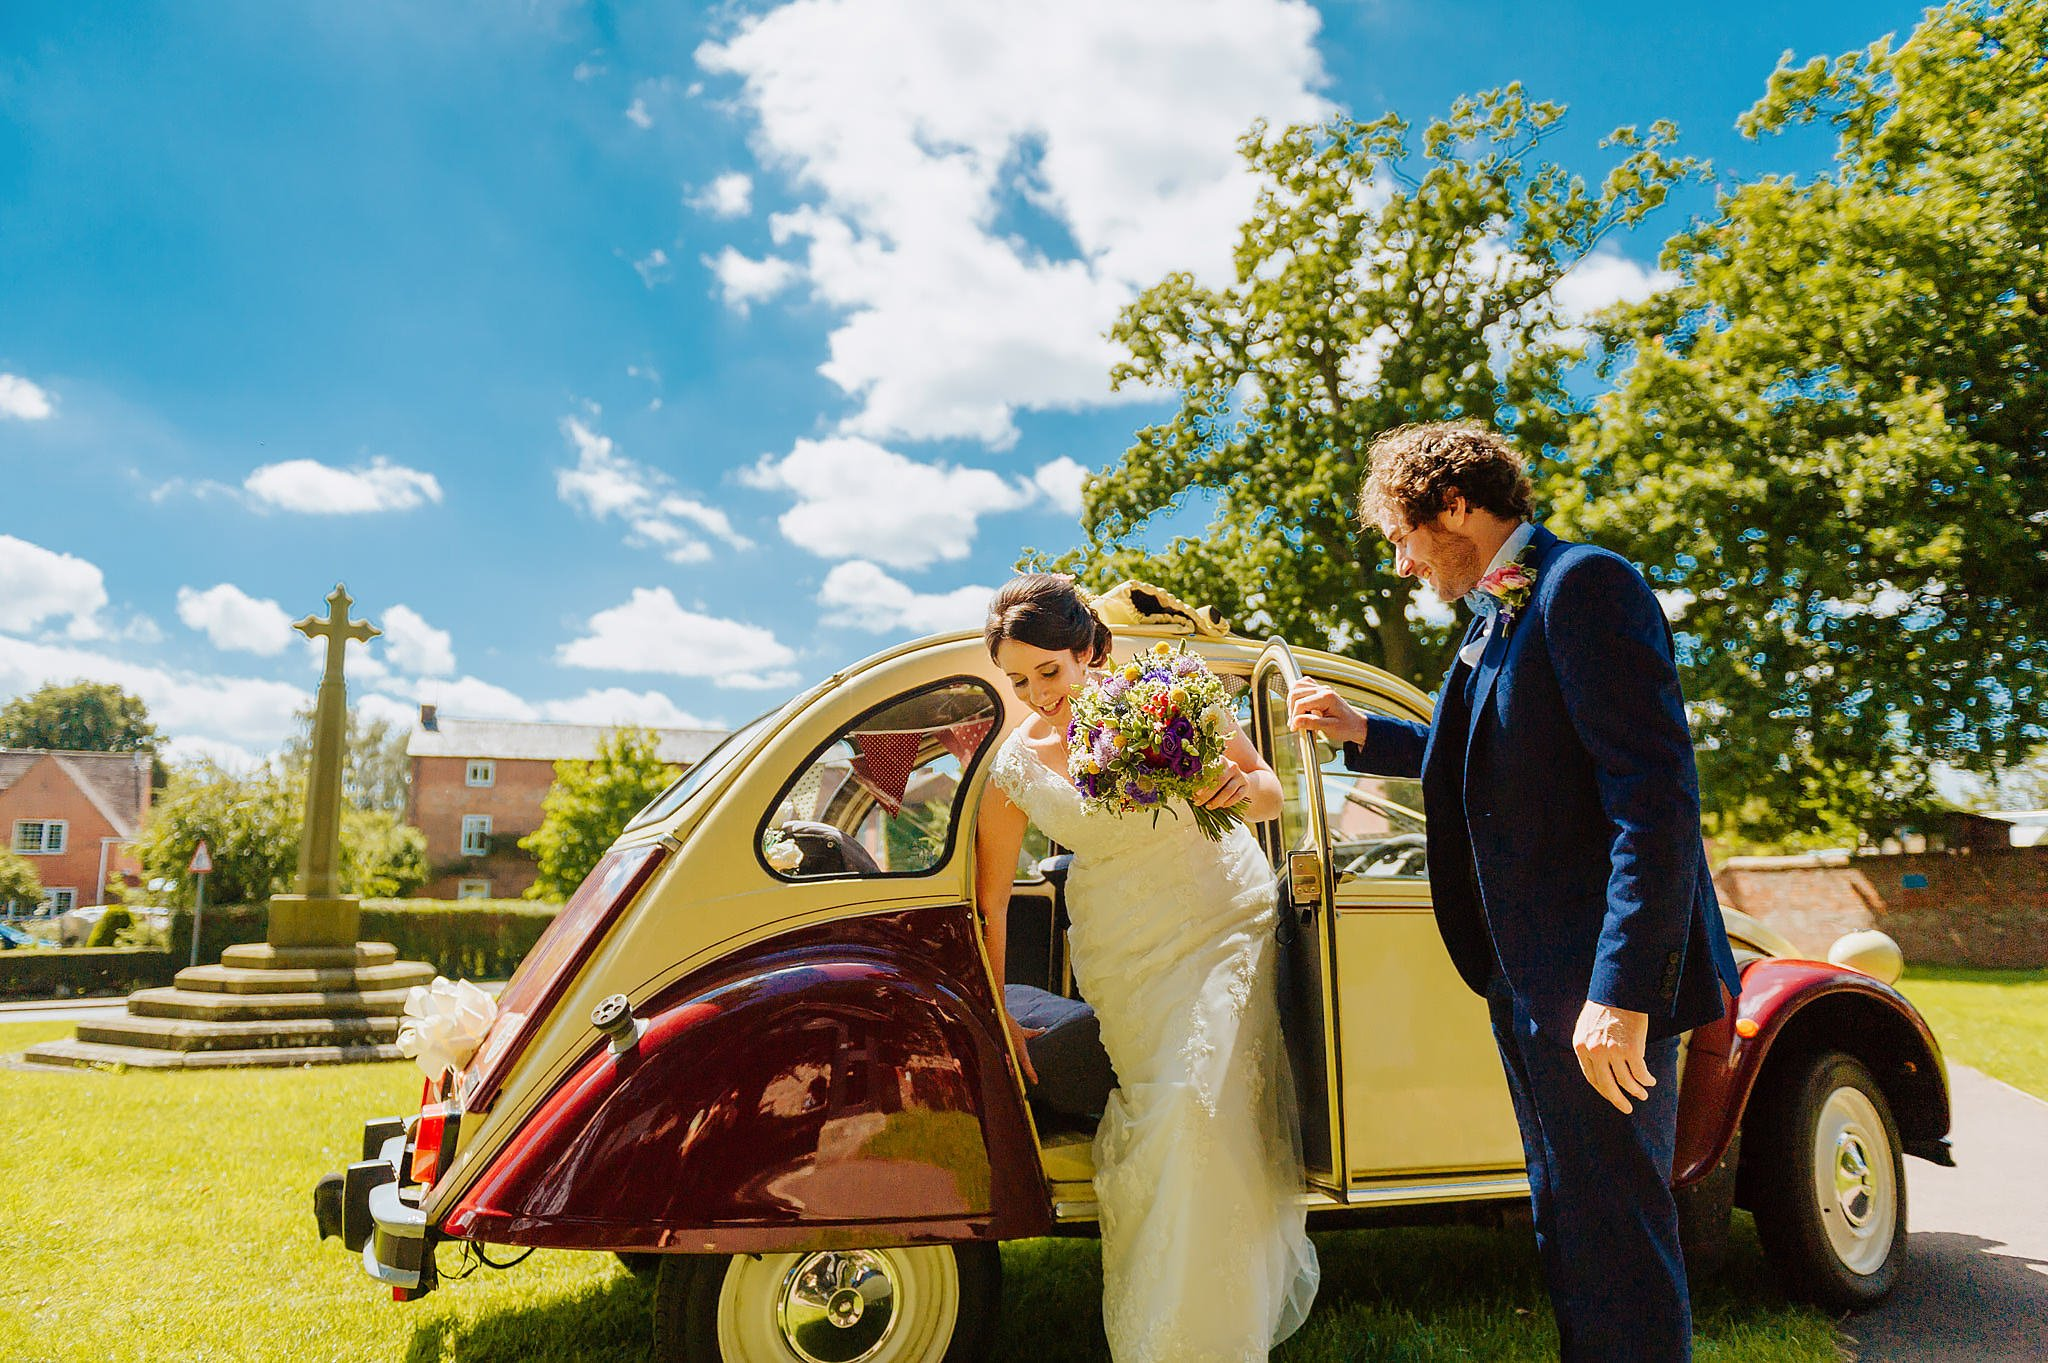 Wedding photography at Hellens Manor in Herefordshire, West Midlands | Shelley + Ian 25